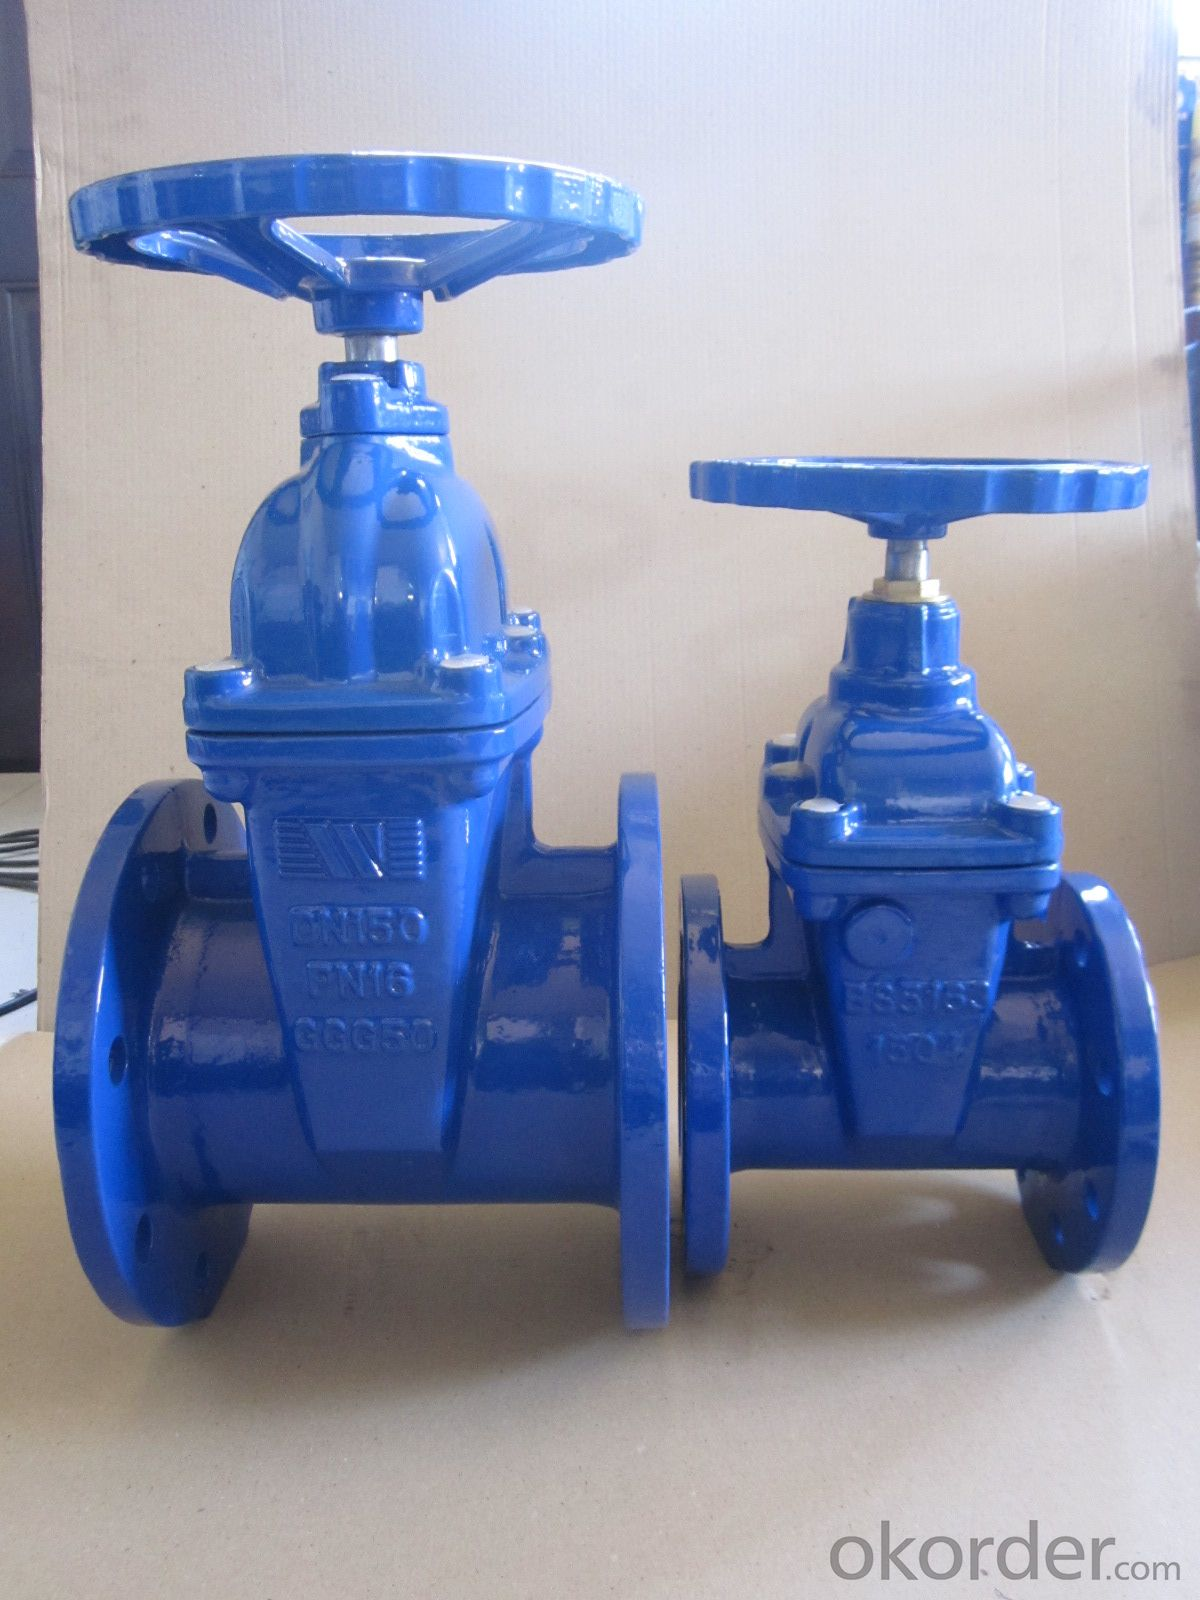 F4 Elastic seat sealed gate valve